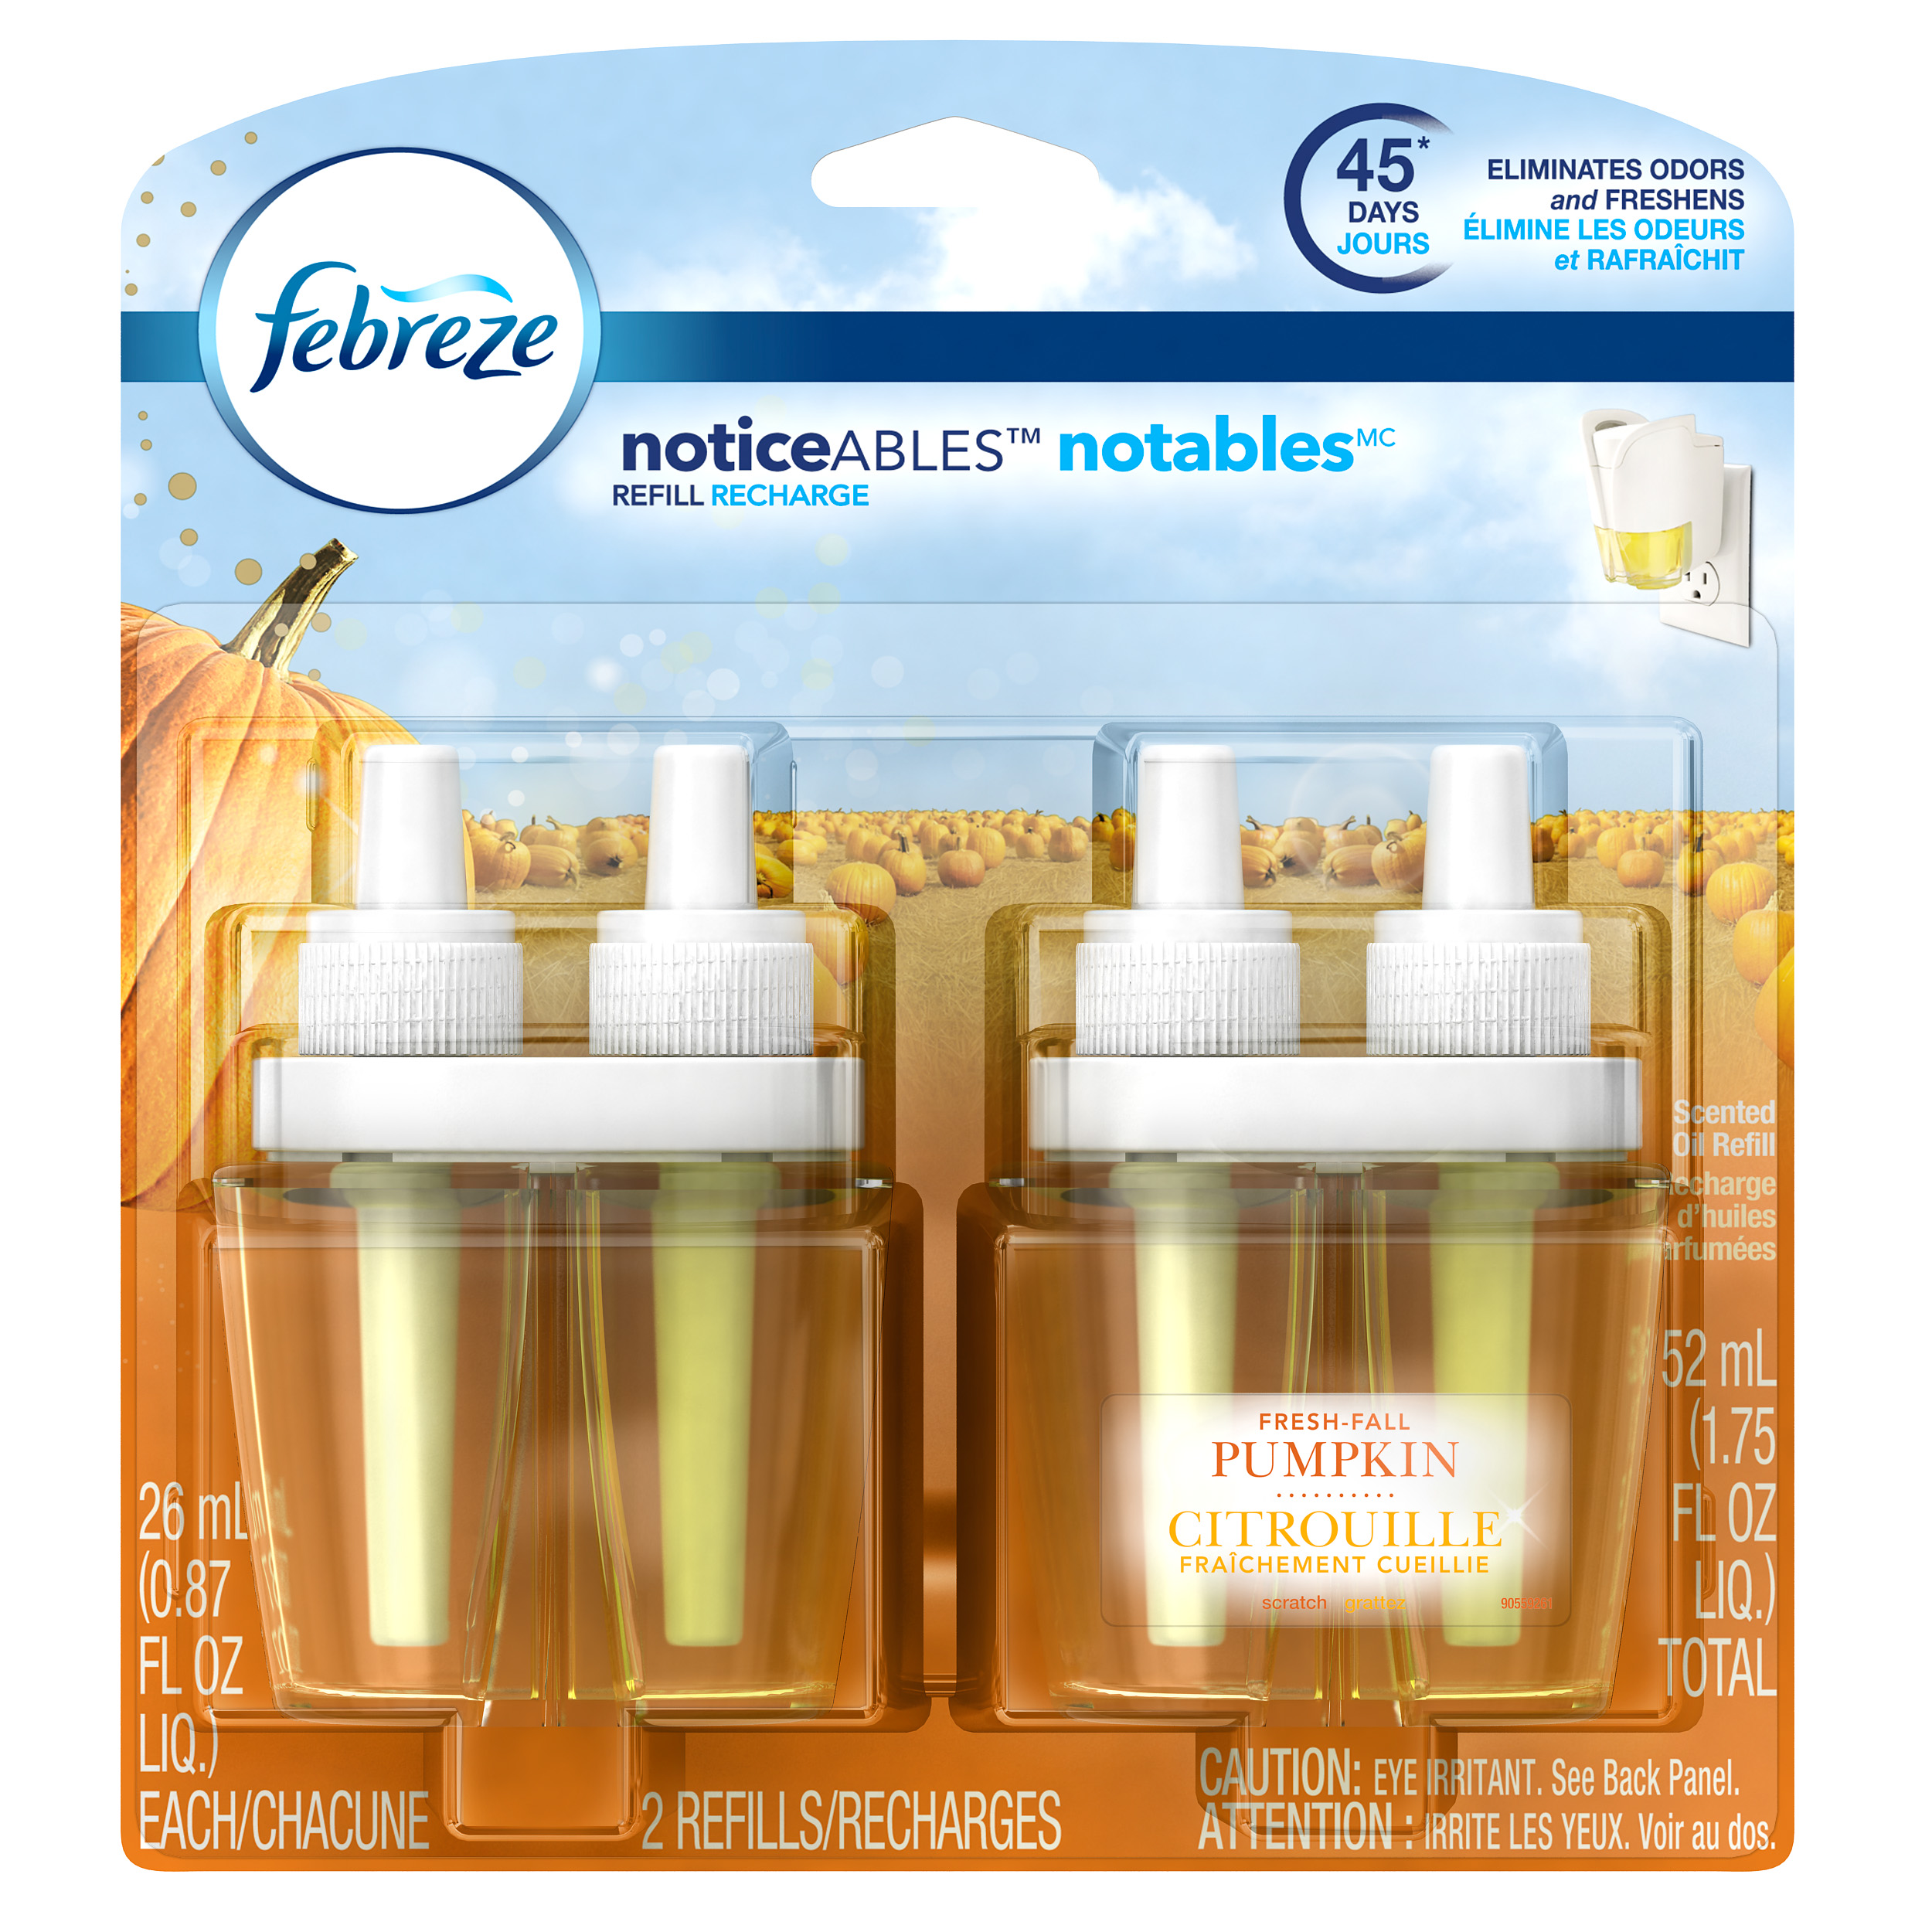 Scented oil refill features a meadows and rain scent to enhance rooms with the fresh, dewy scent of a rainy day. Unique odor converters transform the structure of malodors to prevent your nose from detecting lingering smells in the air.